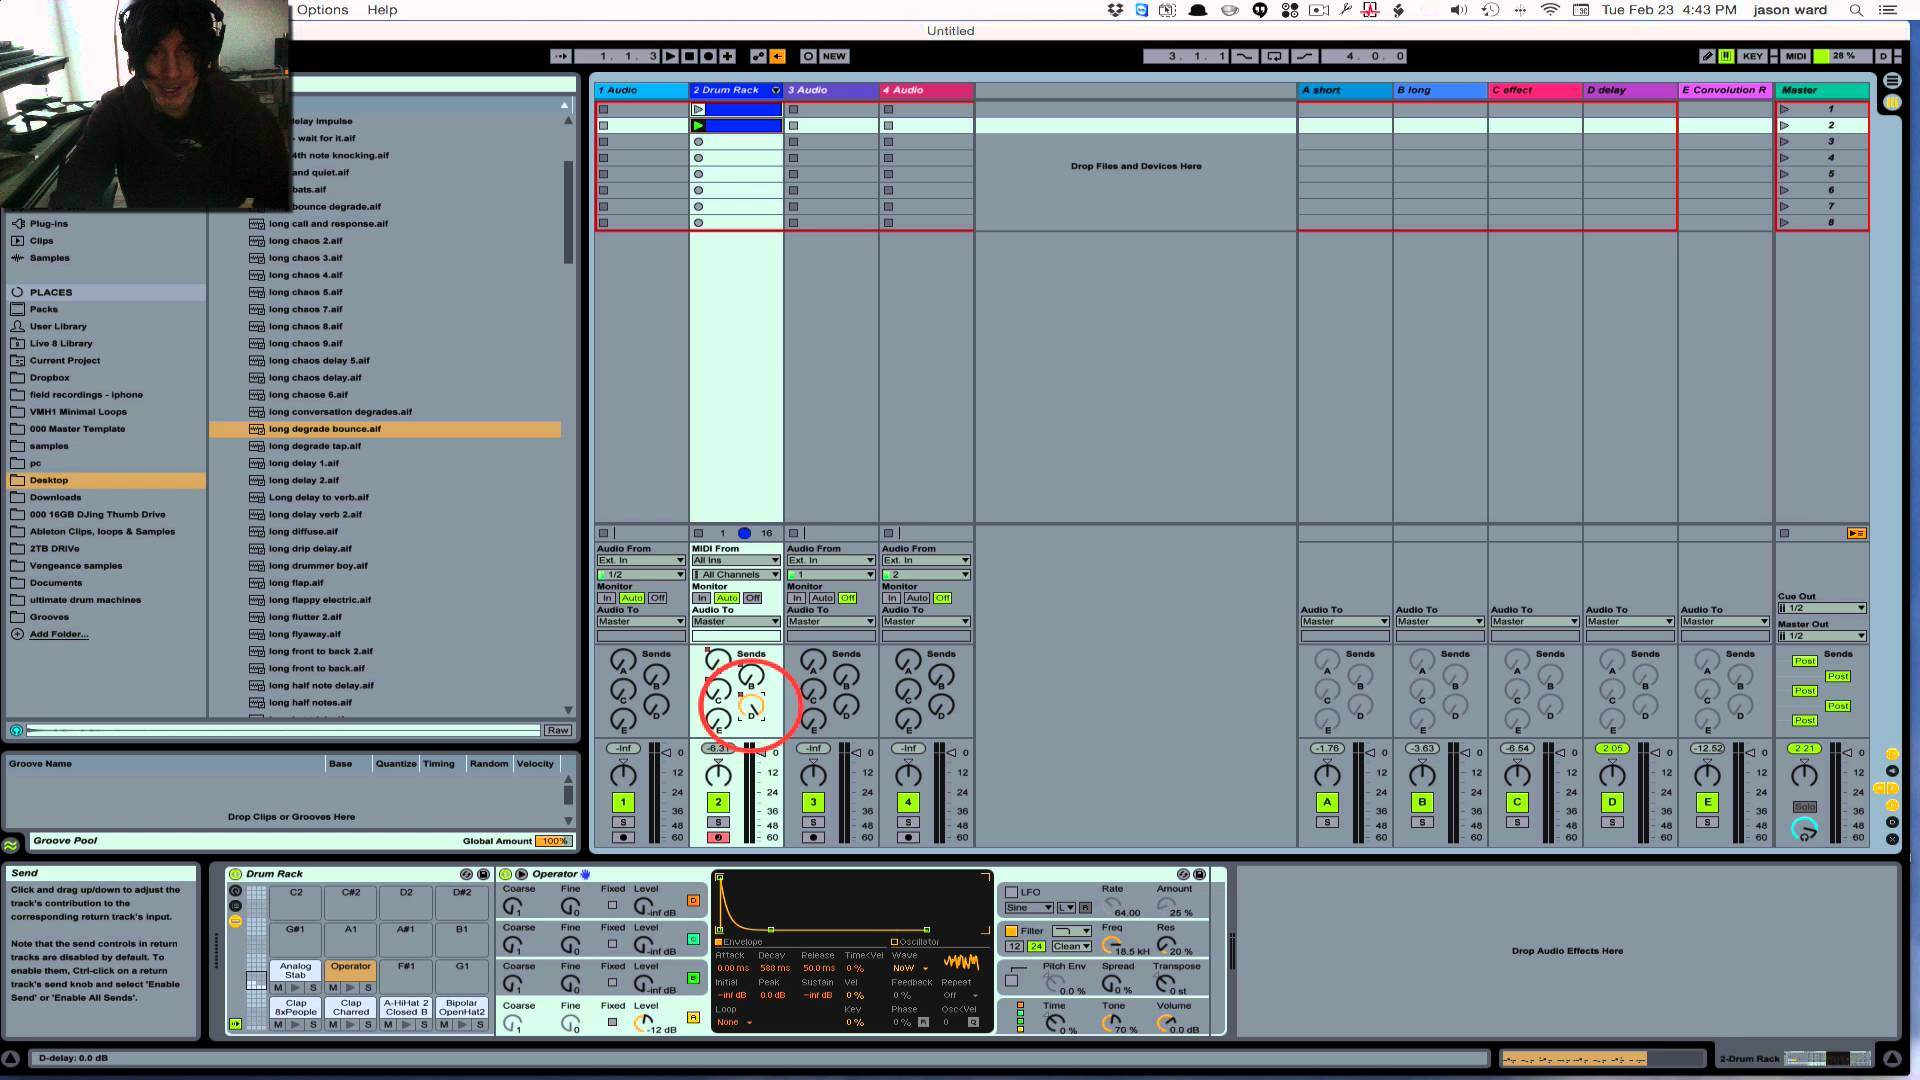 Free Impulse Responses And A Video On How To Use Them In Ableton From www.musicsoftwaretraining.com